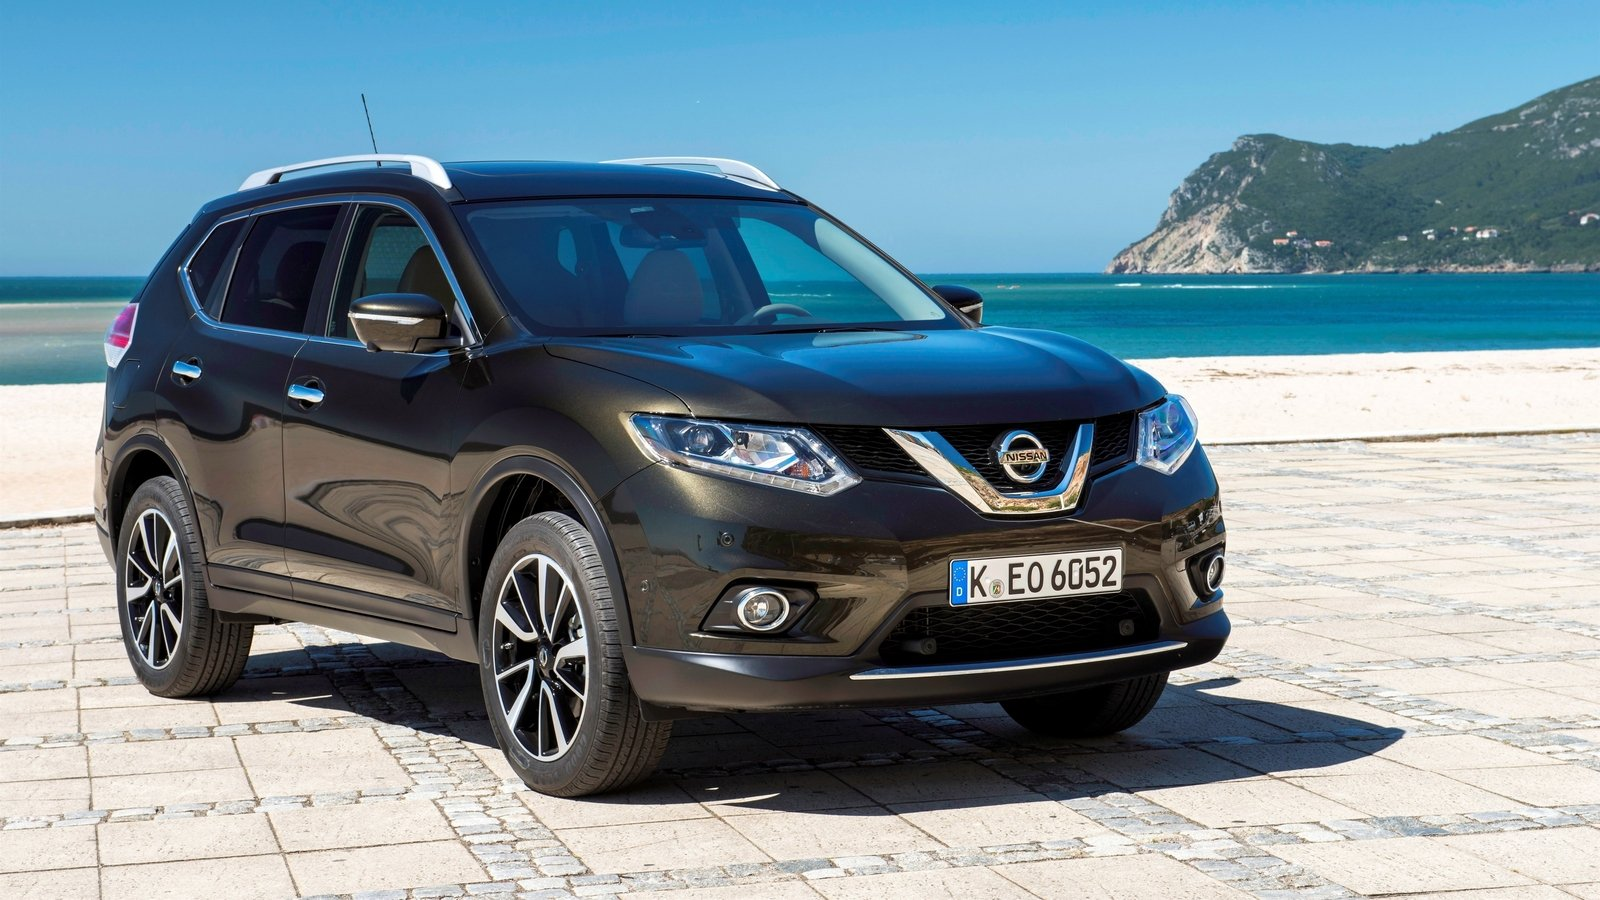 2015 nissan x trail picture 627090 car review top speed. Black Bedroom Furniture Sets. Home Design Ideas